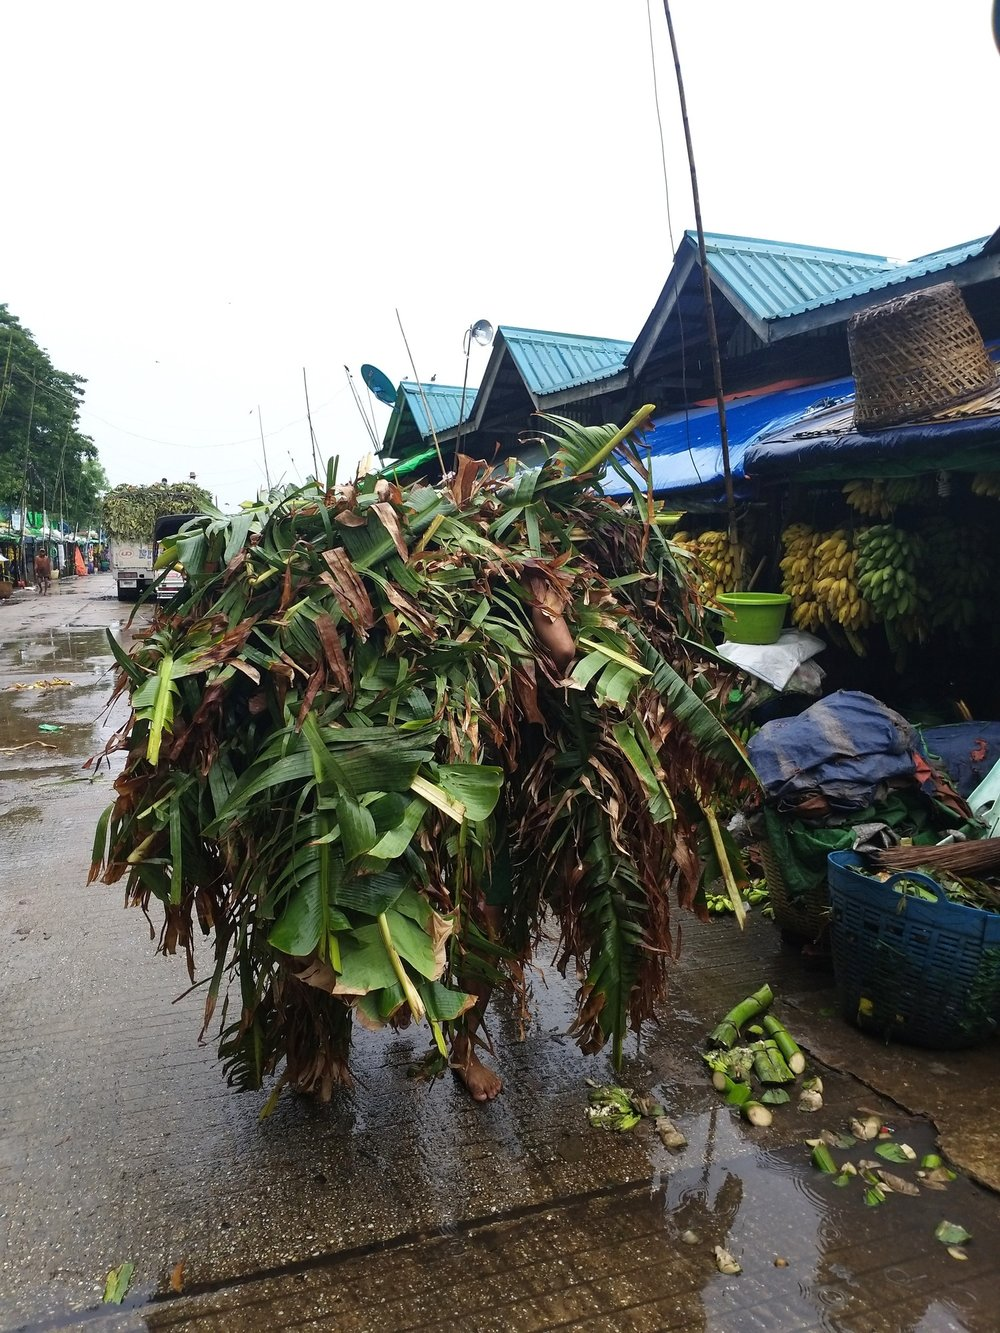 Tidying up at the banana market